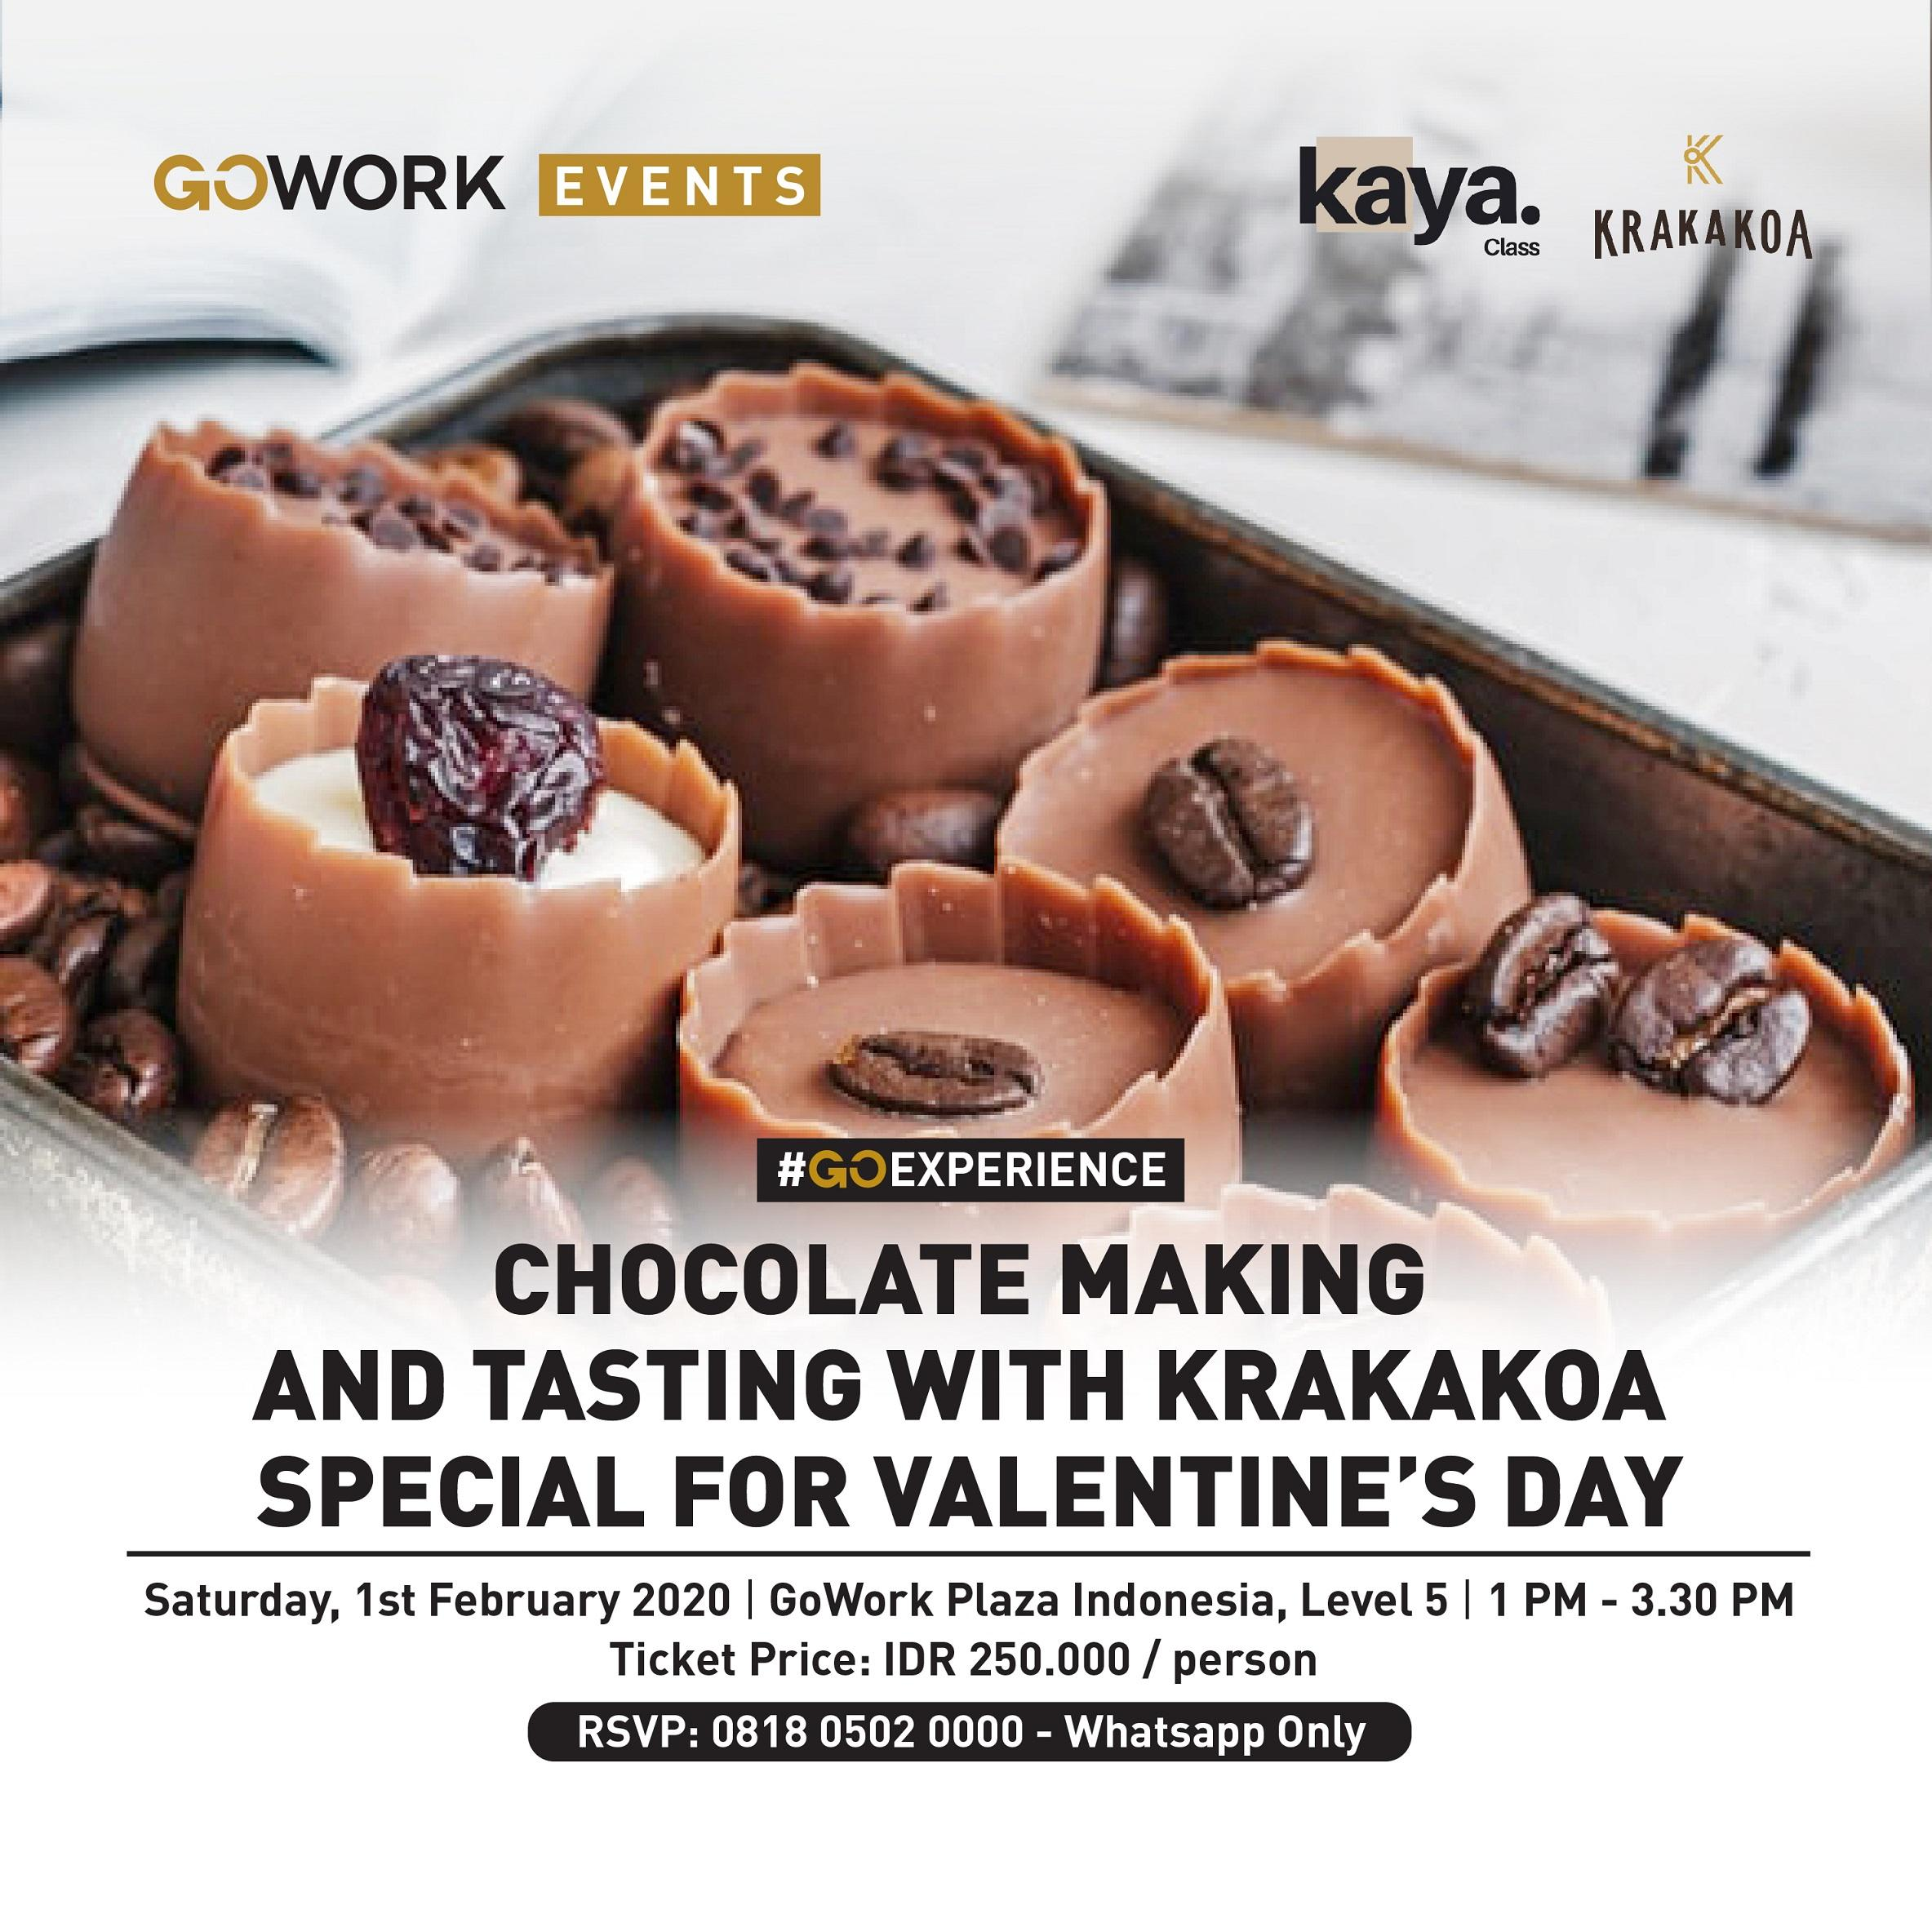 Chocolate Making and Tasting with Krakakoa special for Valentine's day